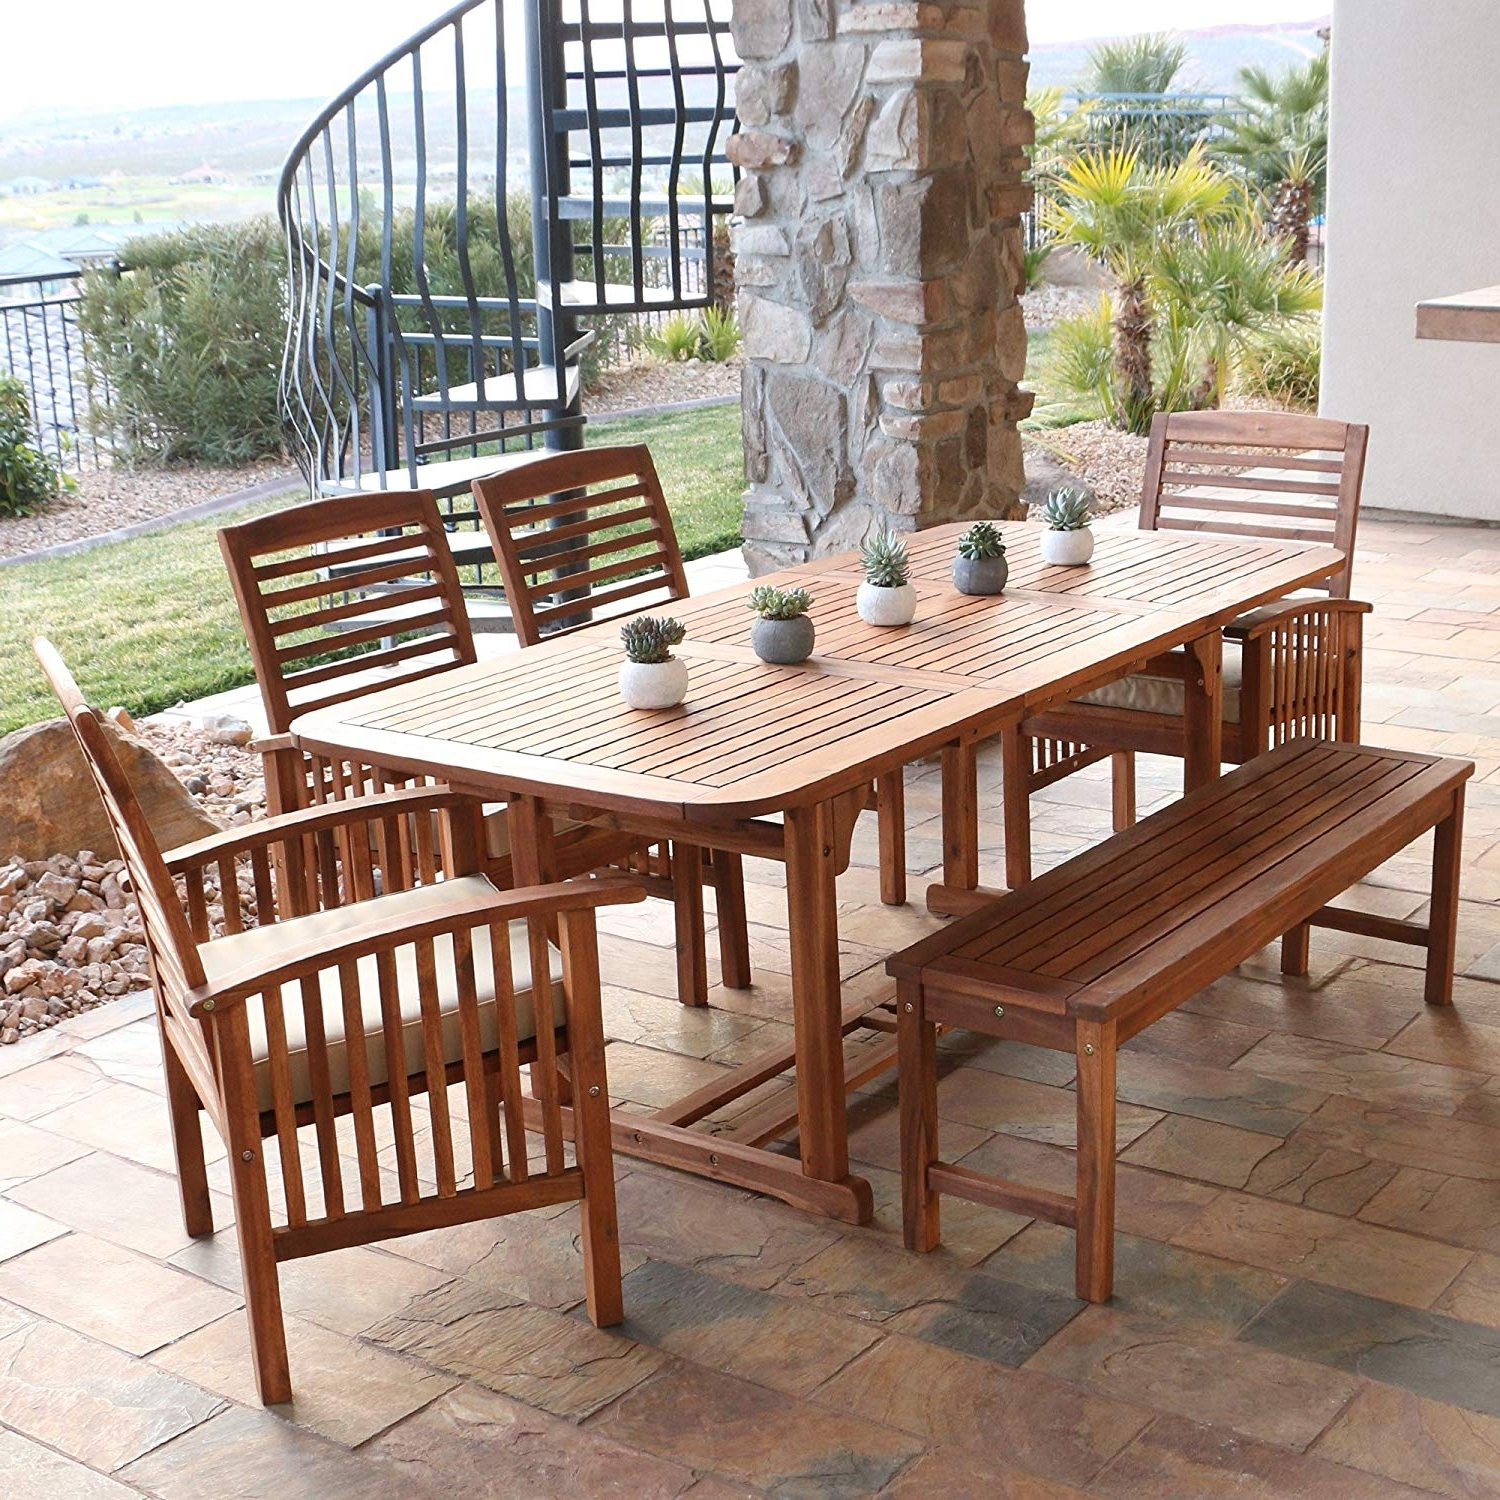 Patio Conversation Sets With Dining Table Inside Most Up To Date Amazon: We Furniture Solid Acacia Wood 6 Piece Patio Dining Set (View 12 of 15)